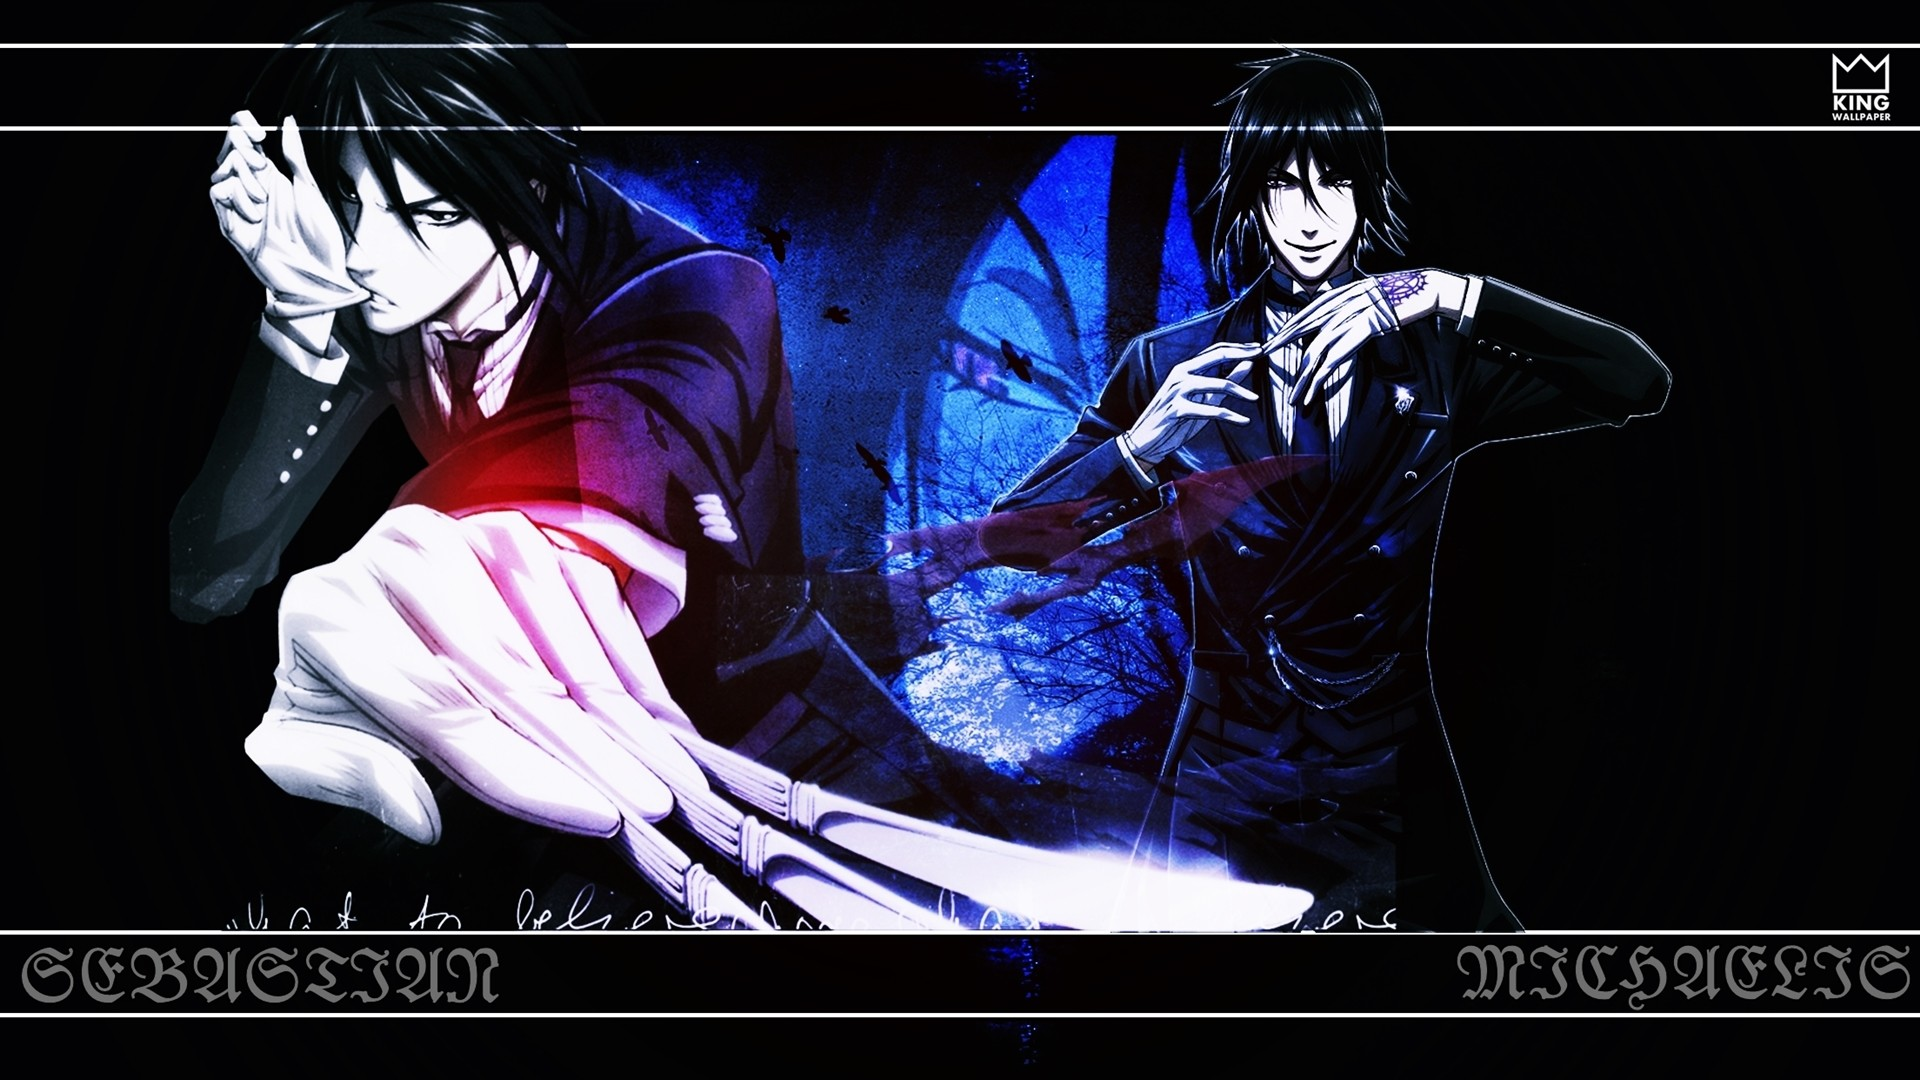 Res: 1920x1080, ... Sebastian Michaelis Wallpaper - @Black Butler by Kingwallpaper